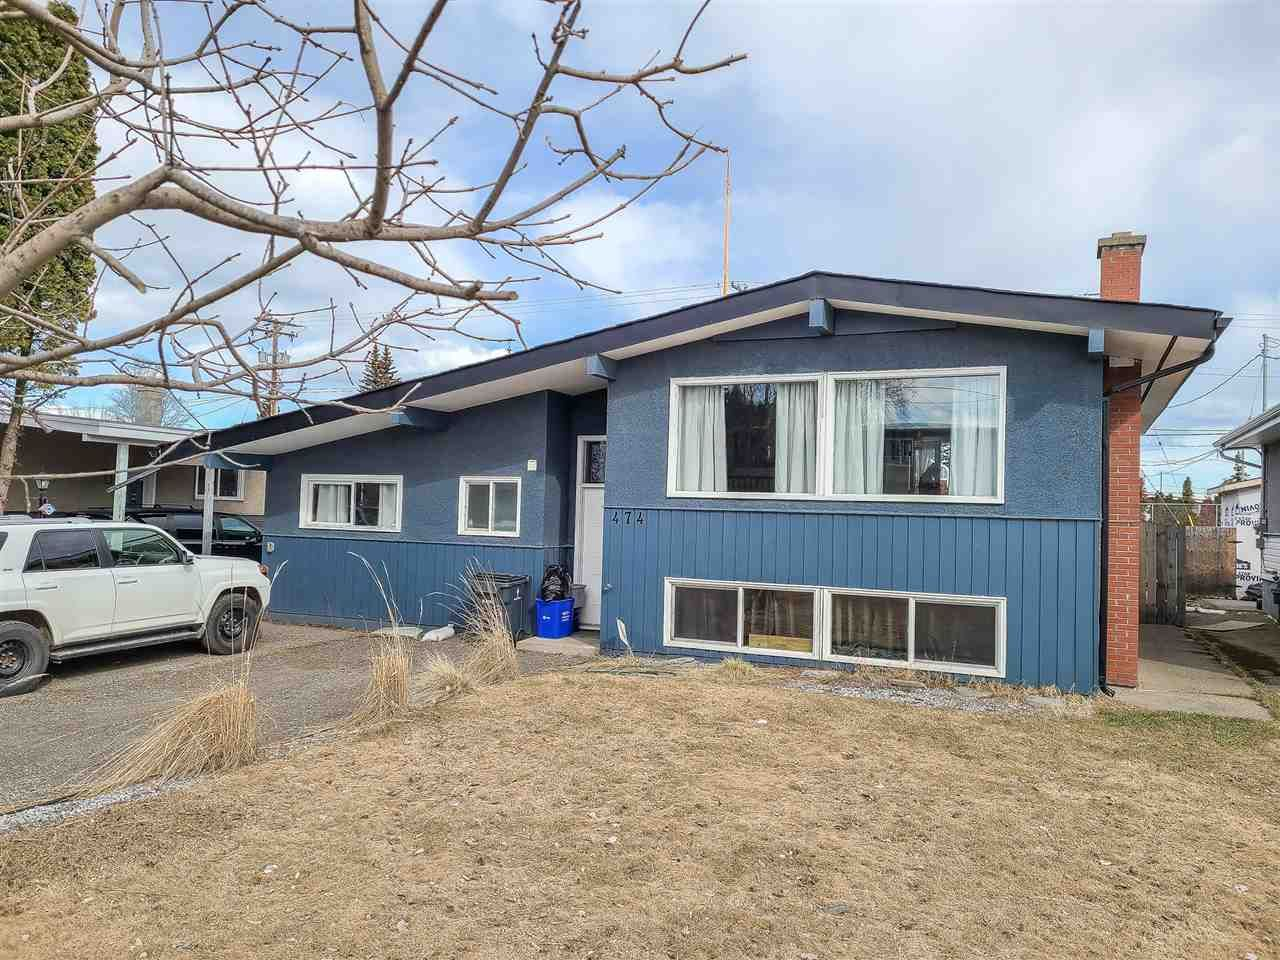 """Main Photo: 474 S LYON Street in Prince George: Quinson House for sale in """"QUINSON"""" (PG City West (Zone 71))  : MLS®# R2560311"""